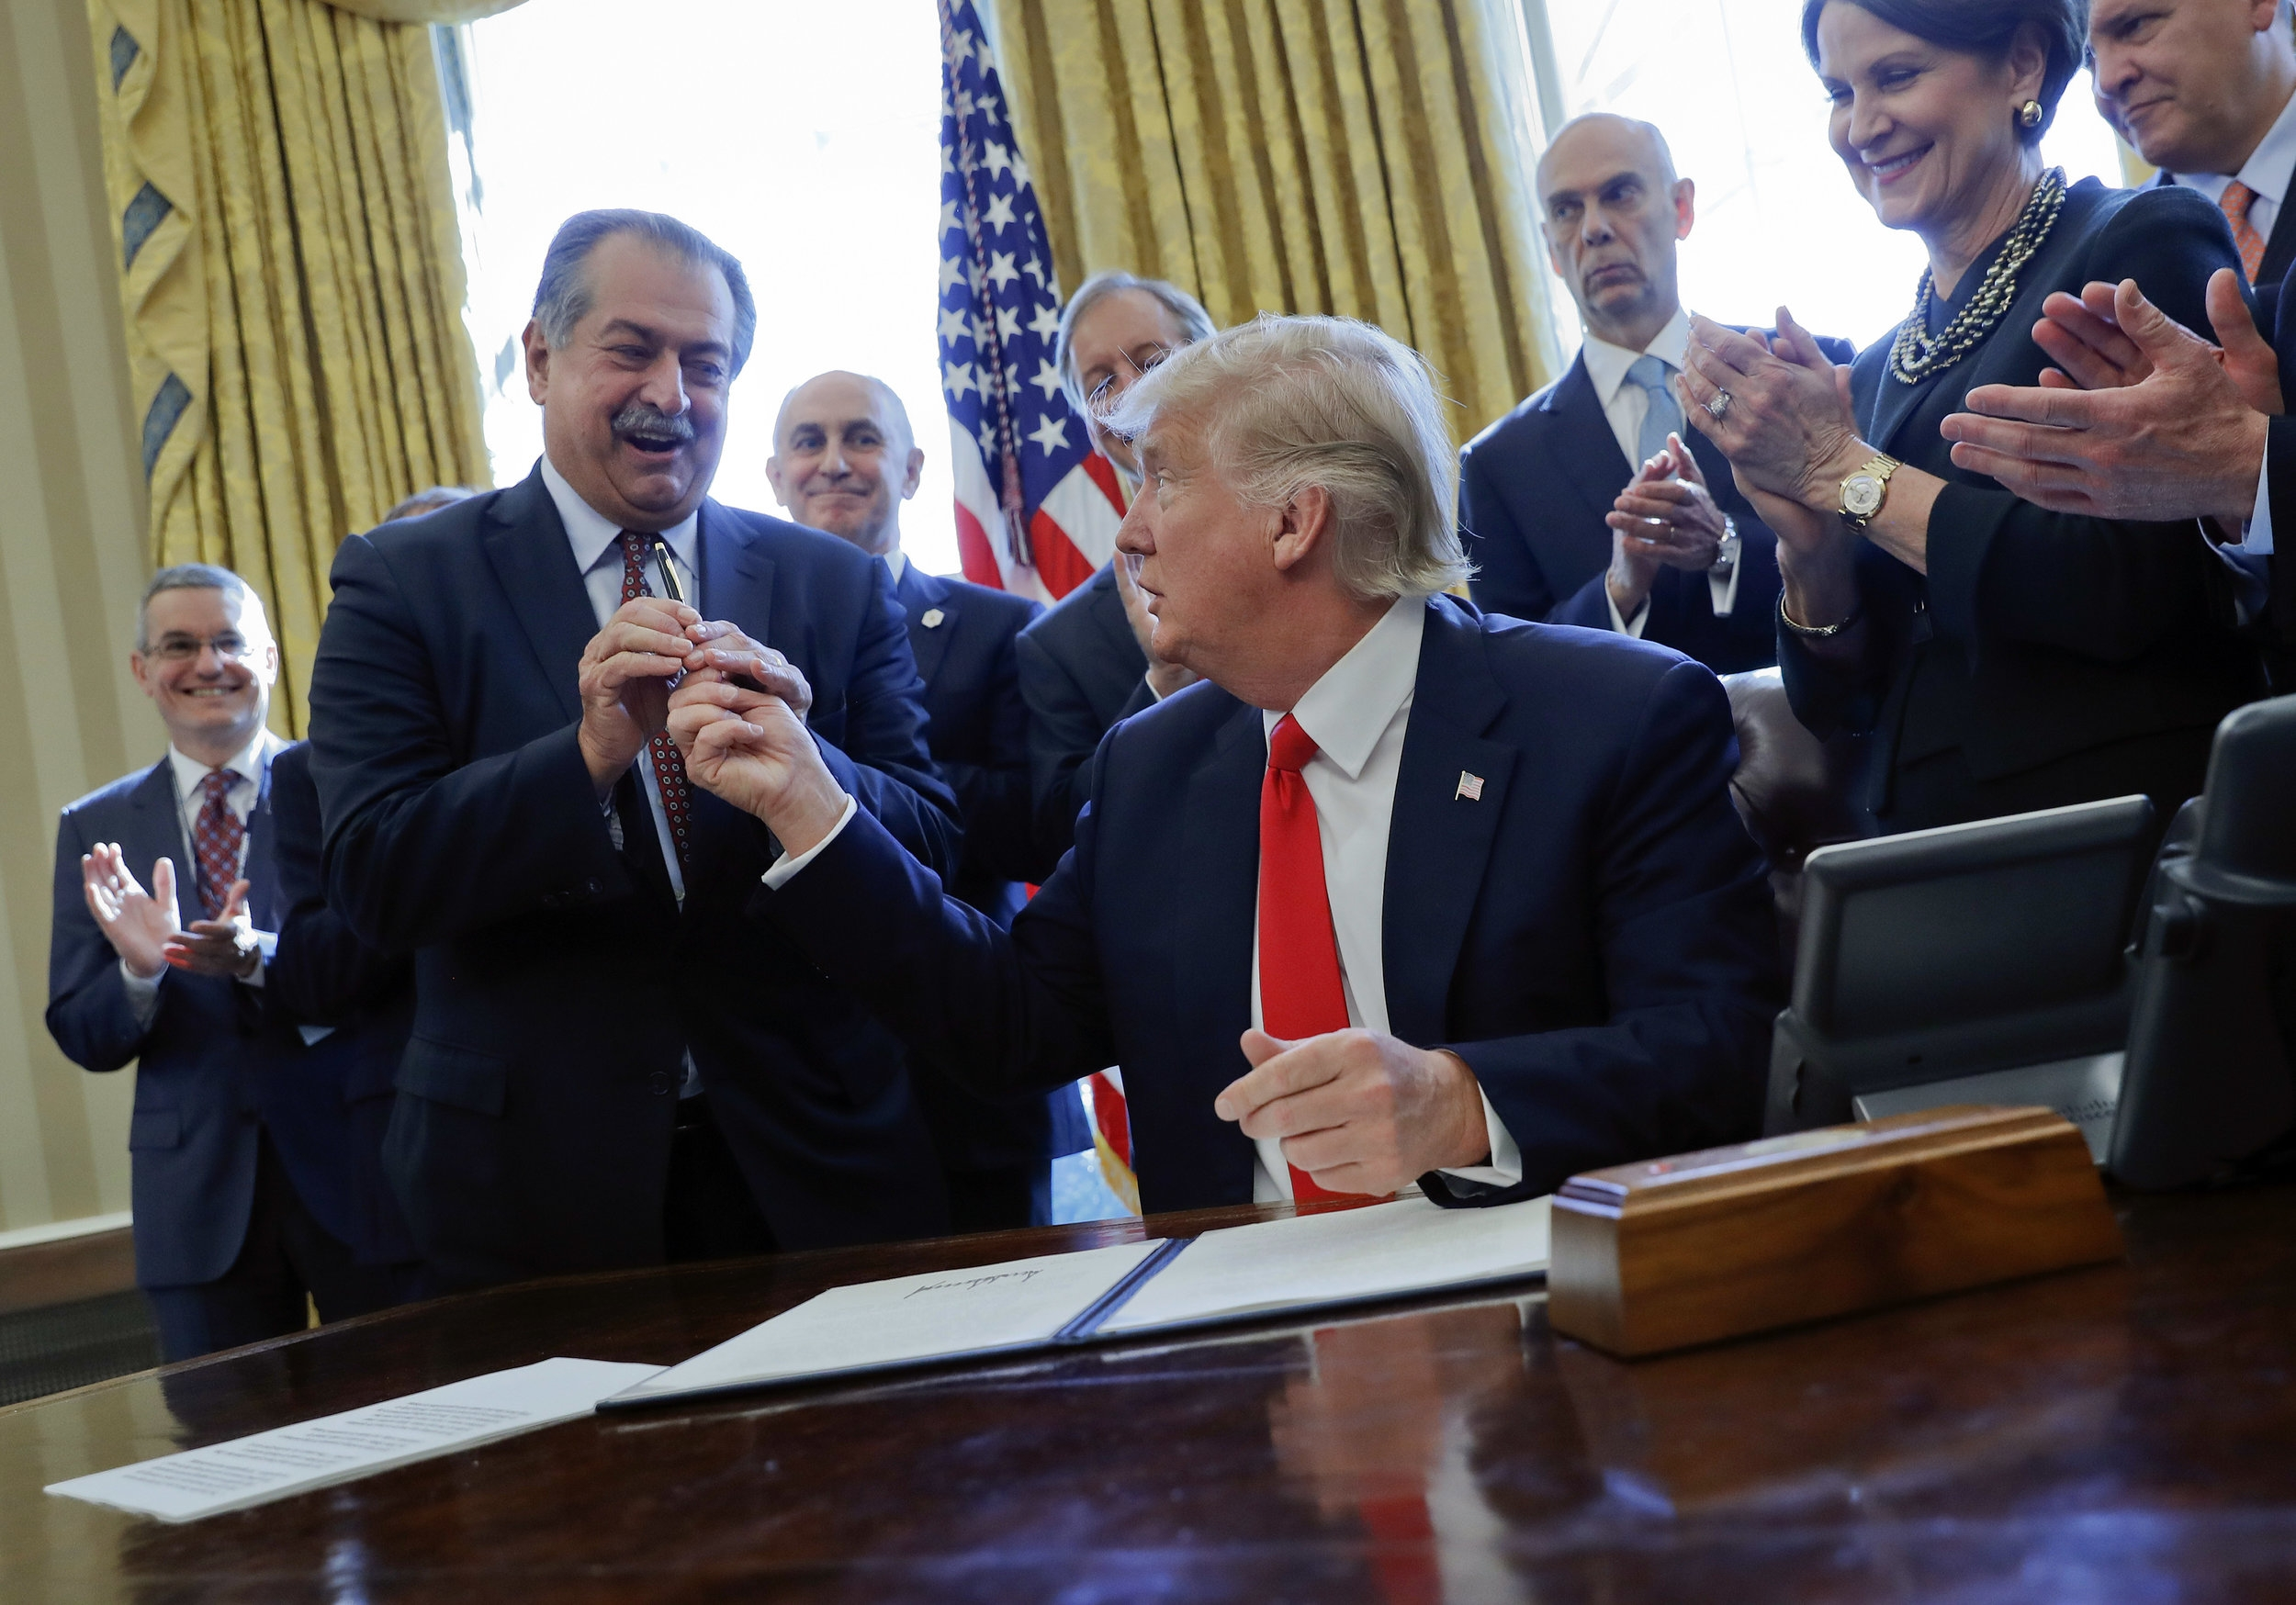 In this Feb. 24, 2017 photo, President Donald Trump gives the pen he used to sign an executive order to Dow Chemical President, Chairman and CEO Andrew Liveris, as other business leaders applaud in the Oval Office. Environmental Protection Agency Administrator Scott Pruitt's schedule shows he met with Liveris for about a half hour on March 9 during a conference held in Houston. Twenty days later Pruitt announced his decision to deny a petition to ban Dow's chlorpyrifos pesticide from being sprayed on food, despite a review by his agency's own scientists that concluded ingesting even minuscule amounts of the chemical can interfere with the brain development of fetuses and infants. (AP Photo/Pablo Martinez Monsivais, File)